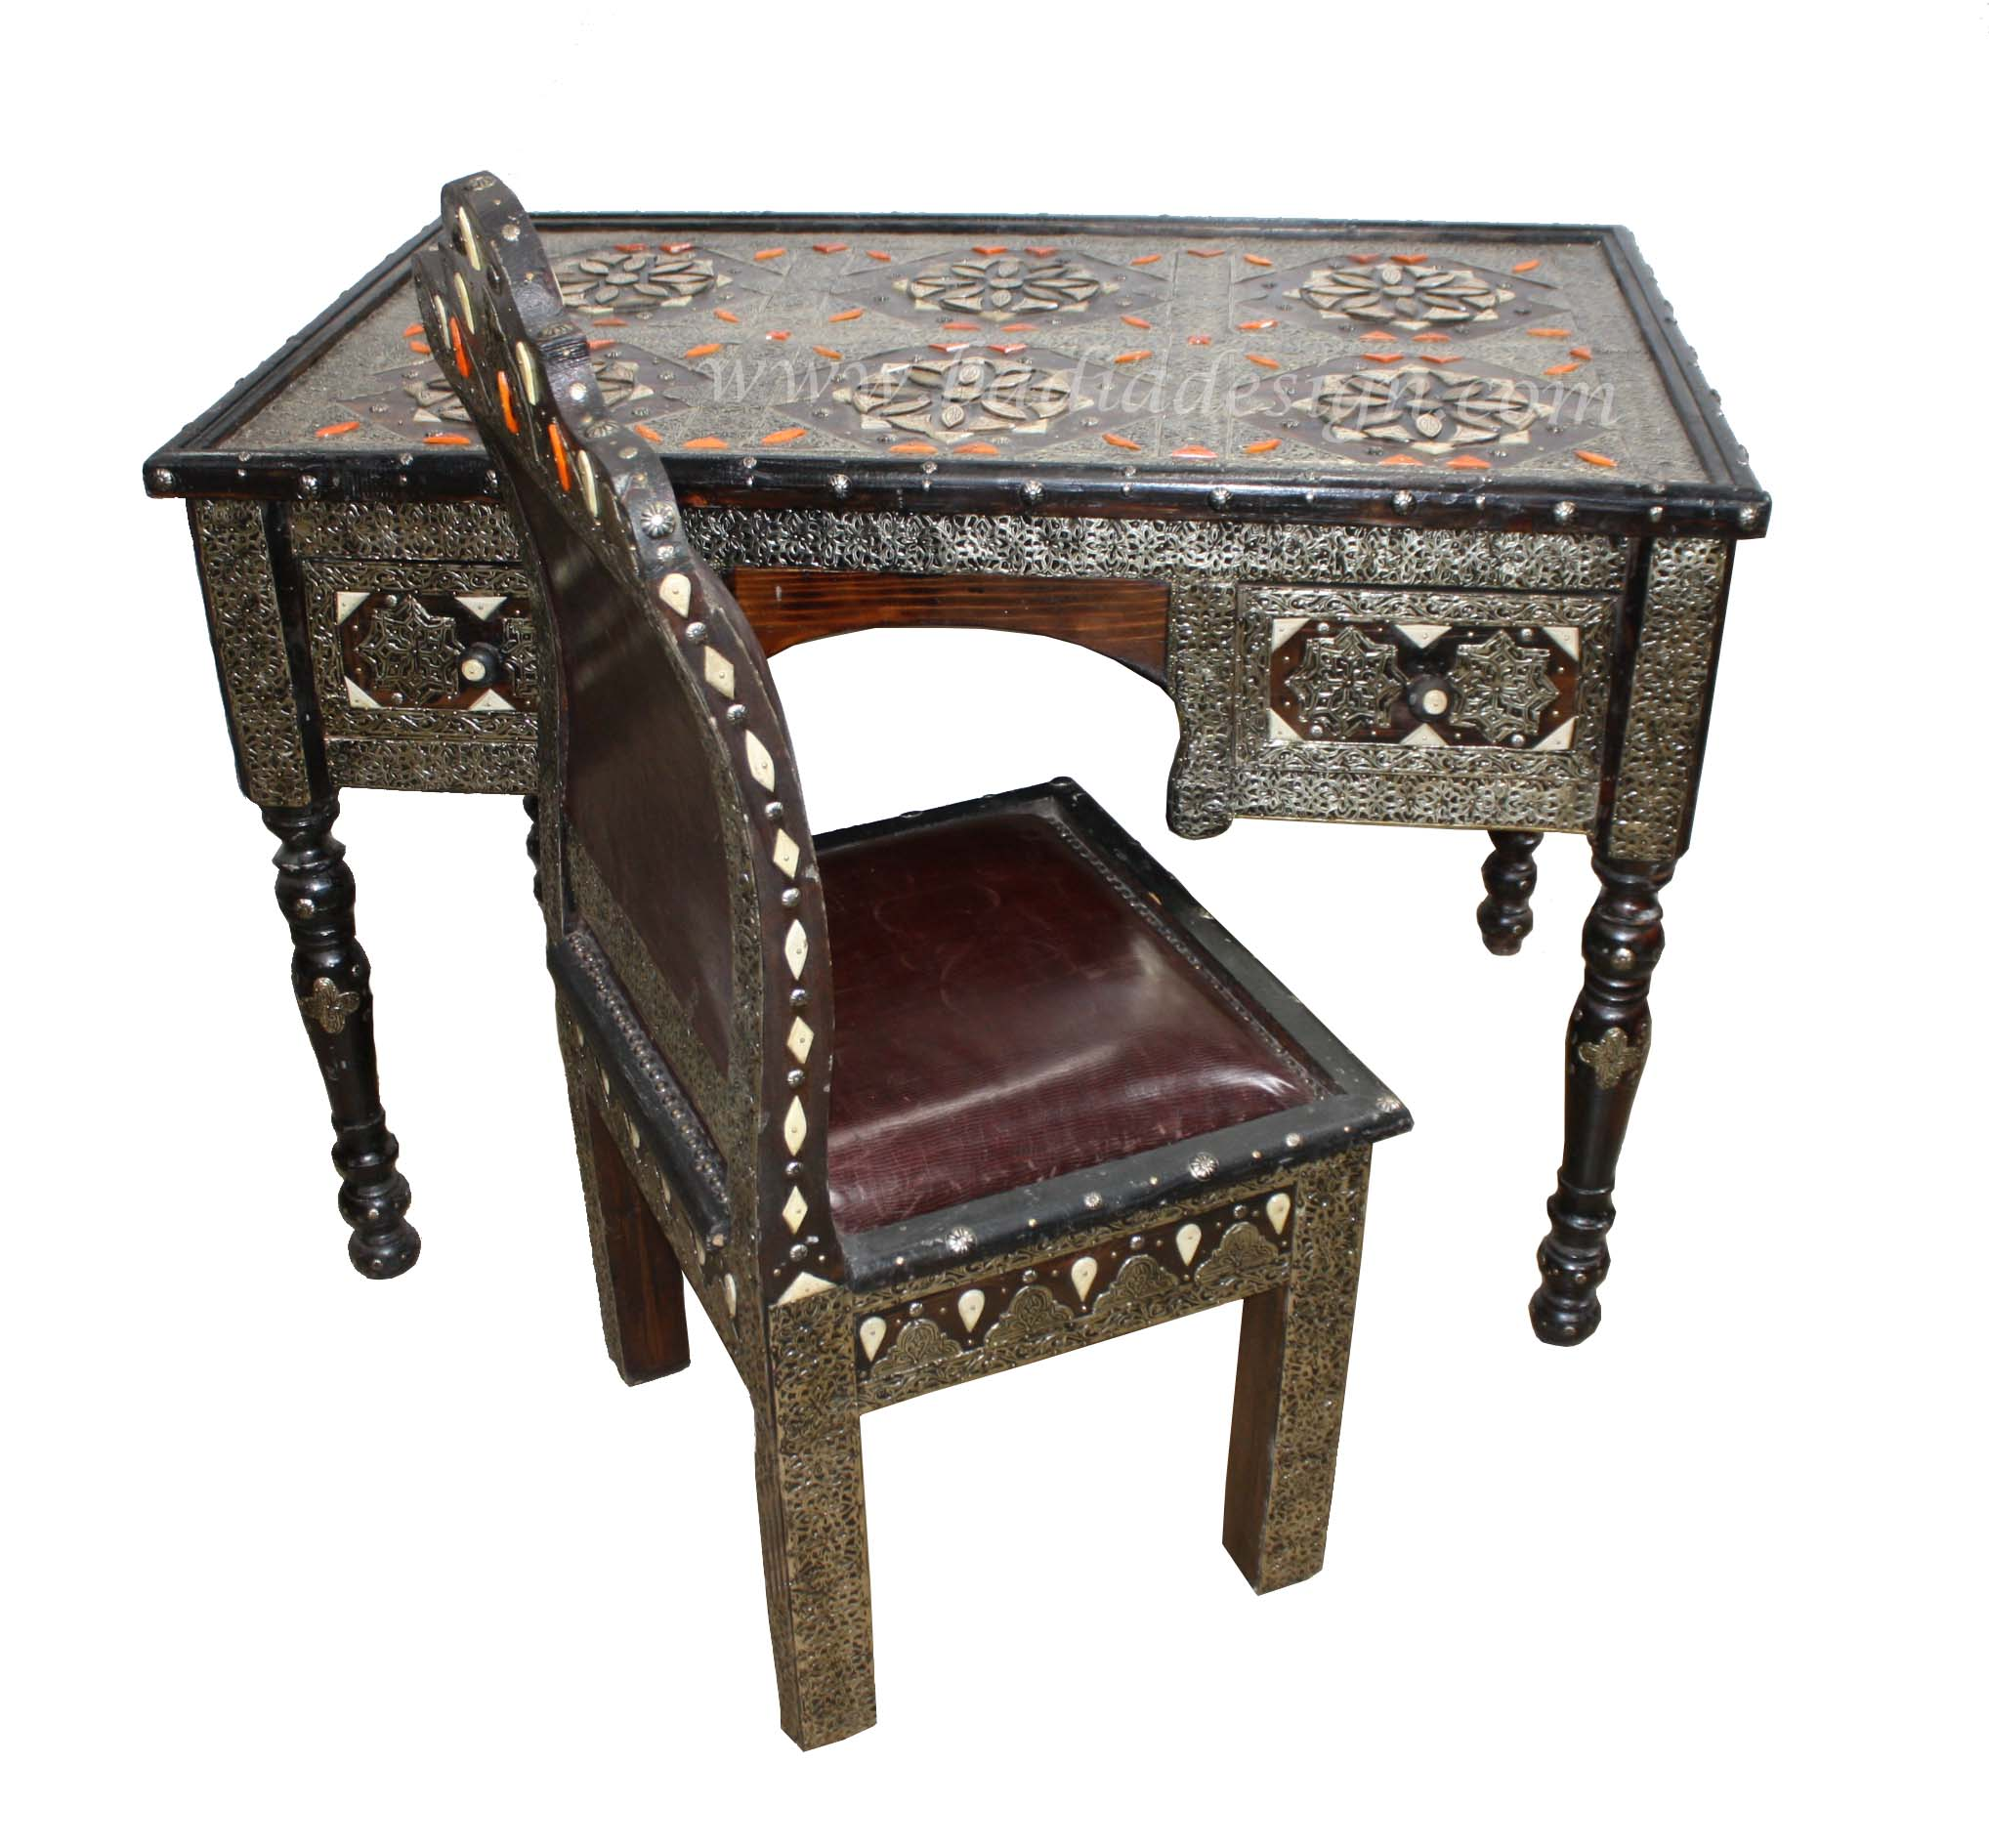 moroccan-high-end-furniture-los-angeles-mb-d001-4.jpg